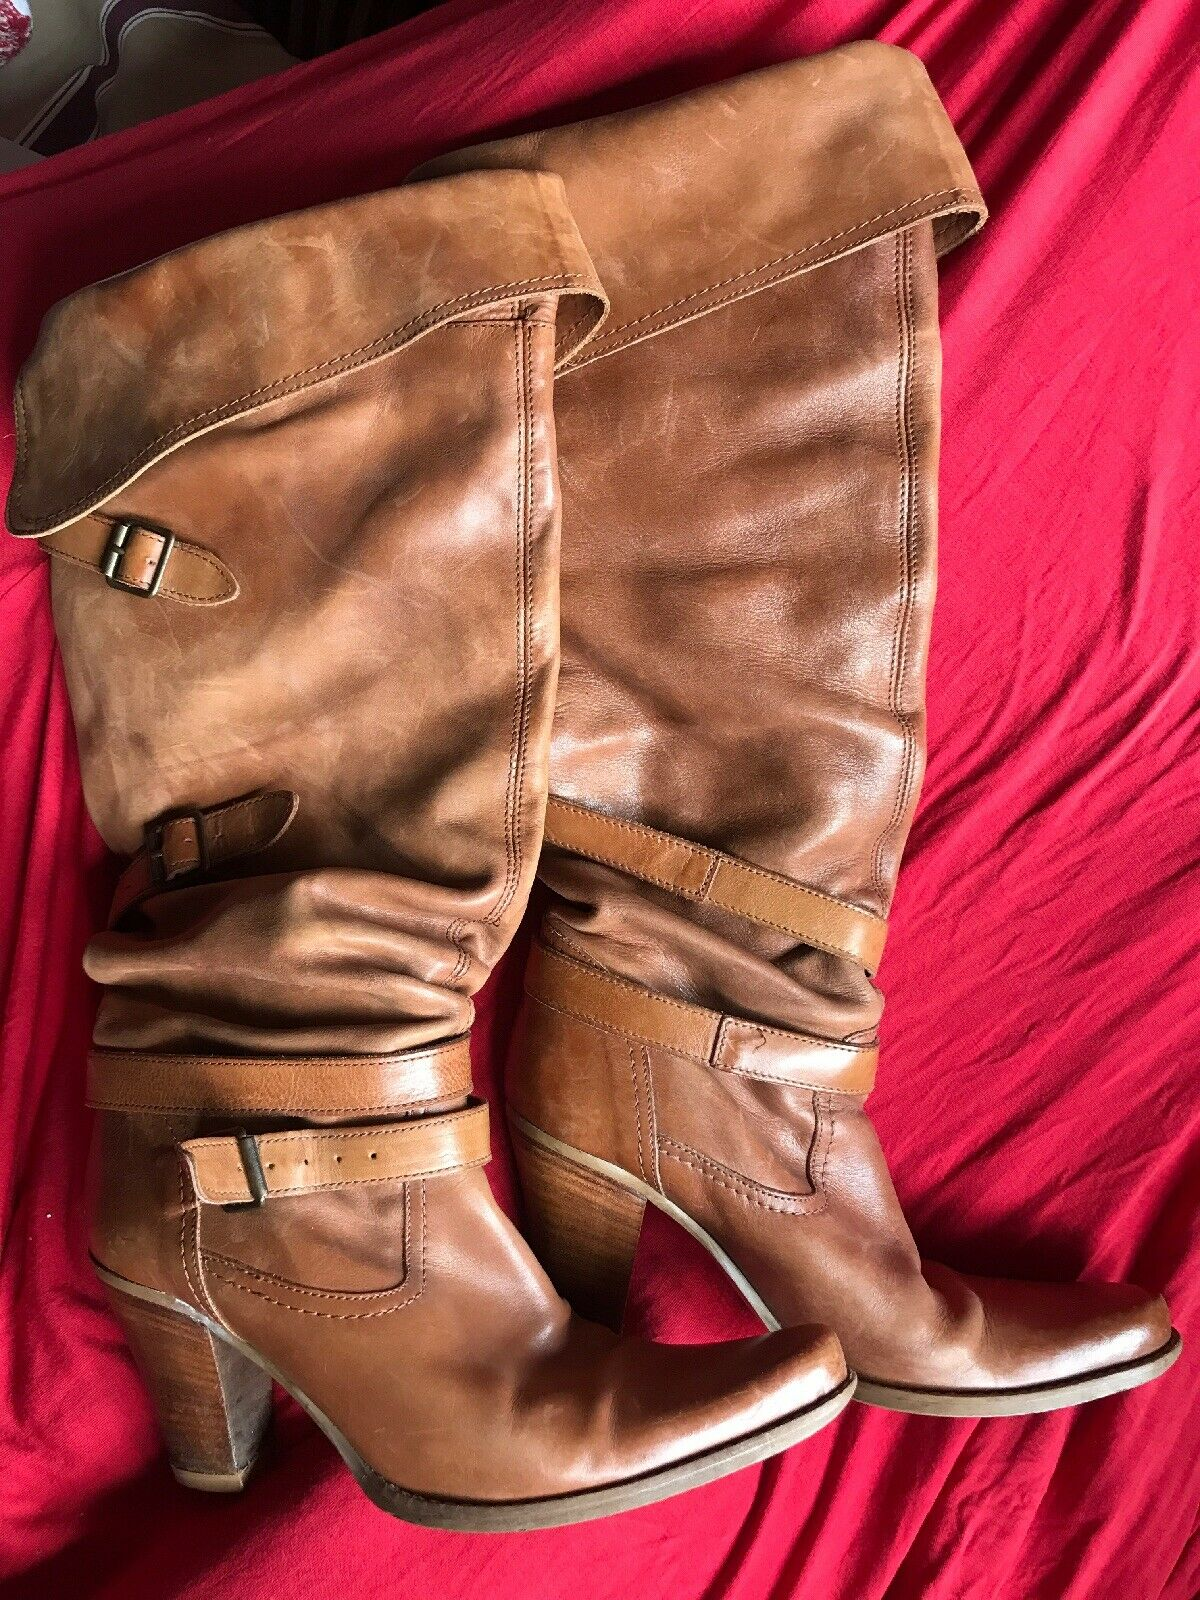 RIVER ISLAND BROWN LEATHER COWBOY COWGIRL BOOTS Size 4   37